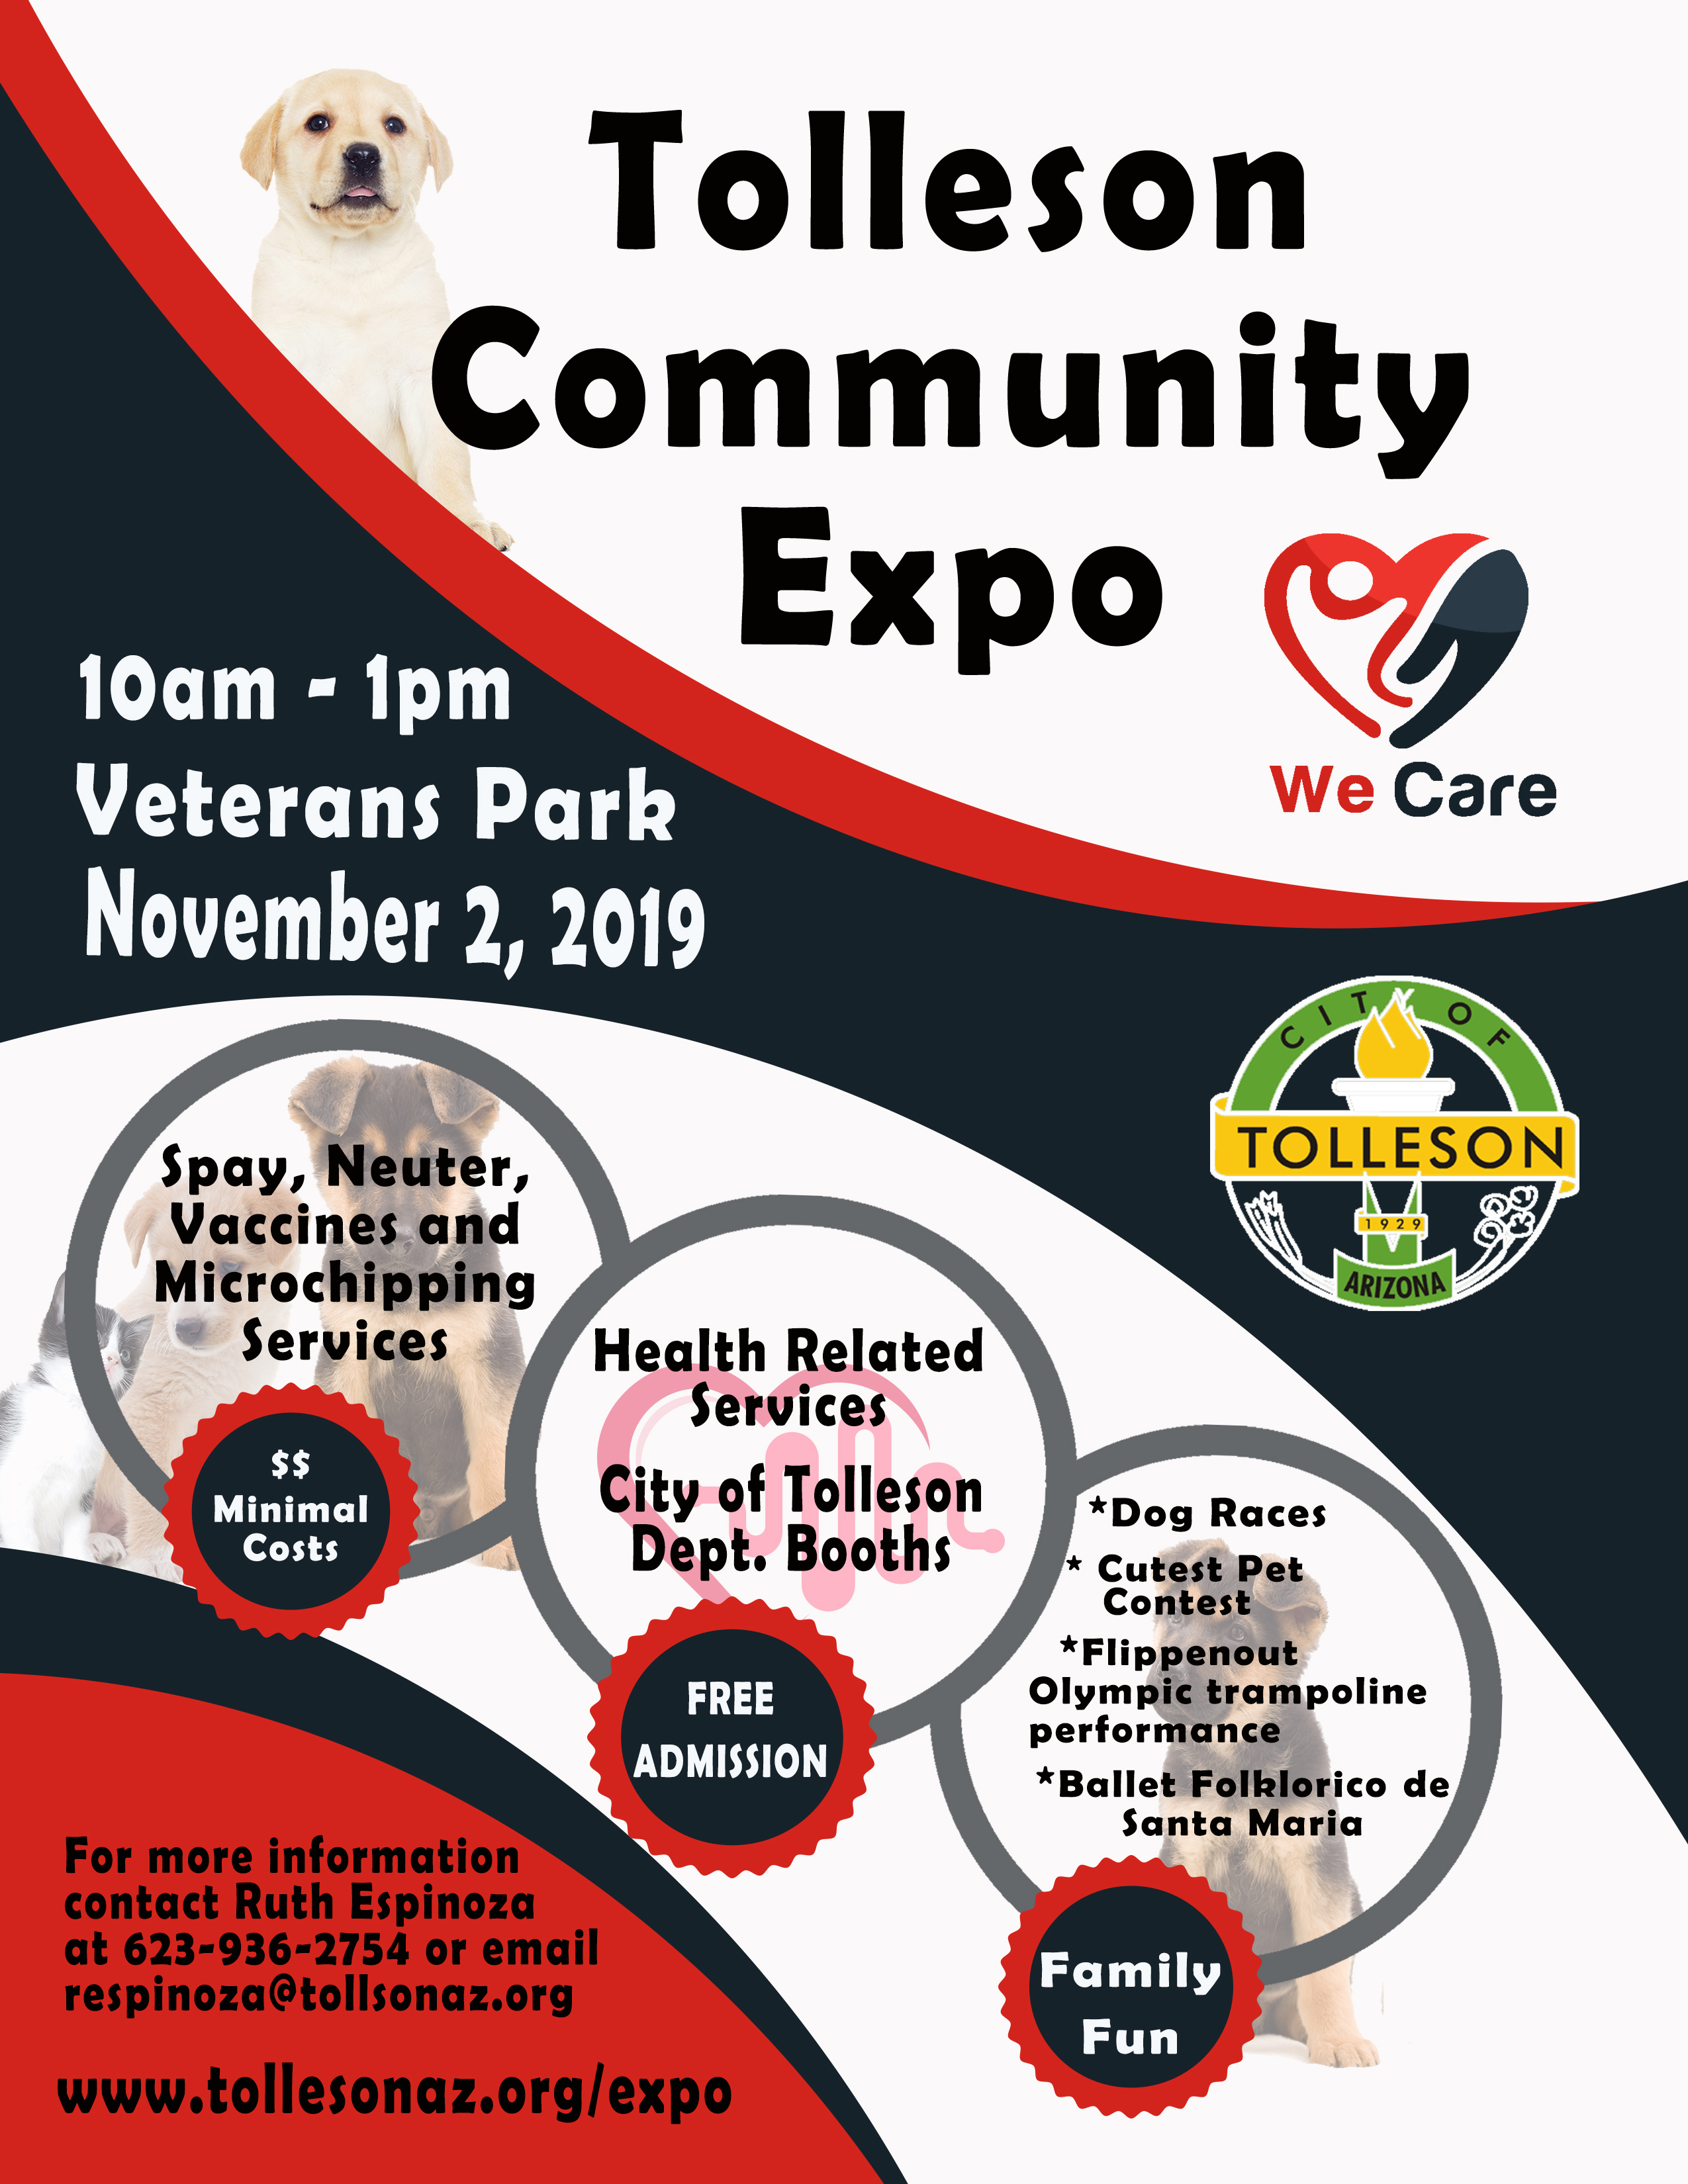 Community Expo Flyer 2019